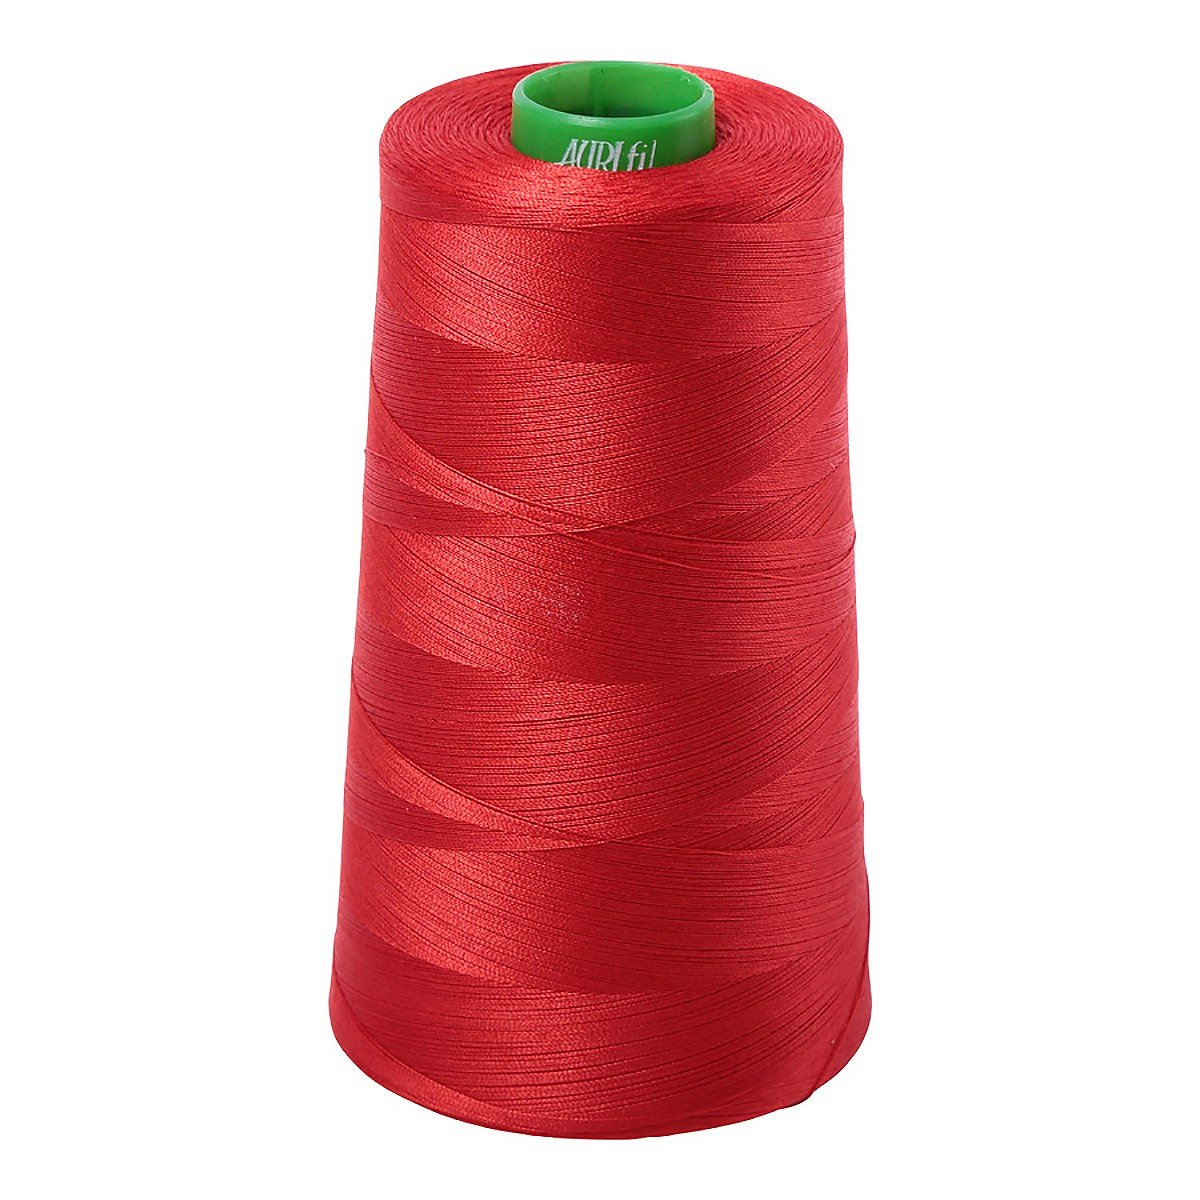 Mako (Cotton) Embroidery Thread Solid 40wt 5140yds Paprika